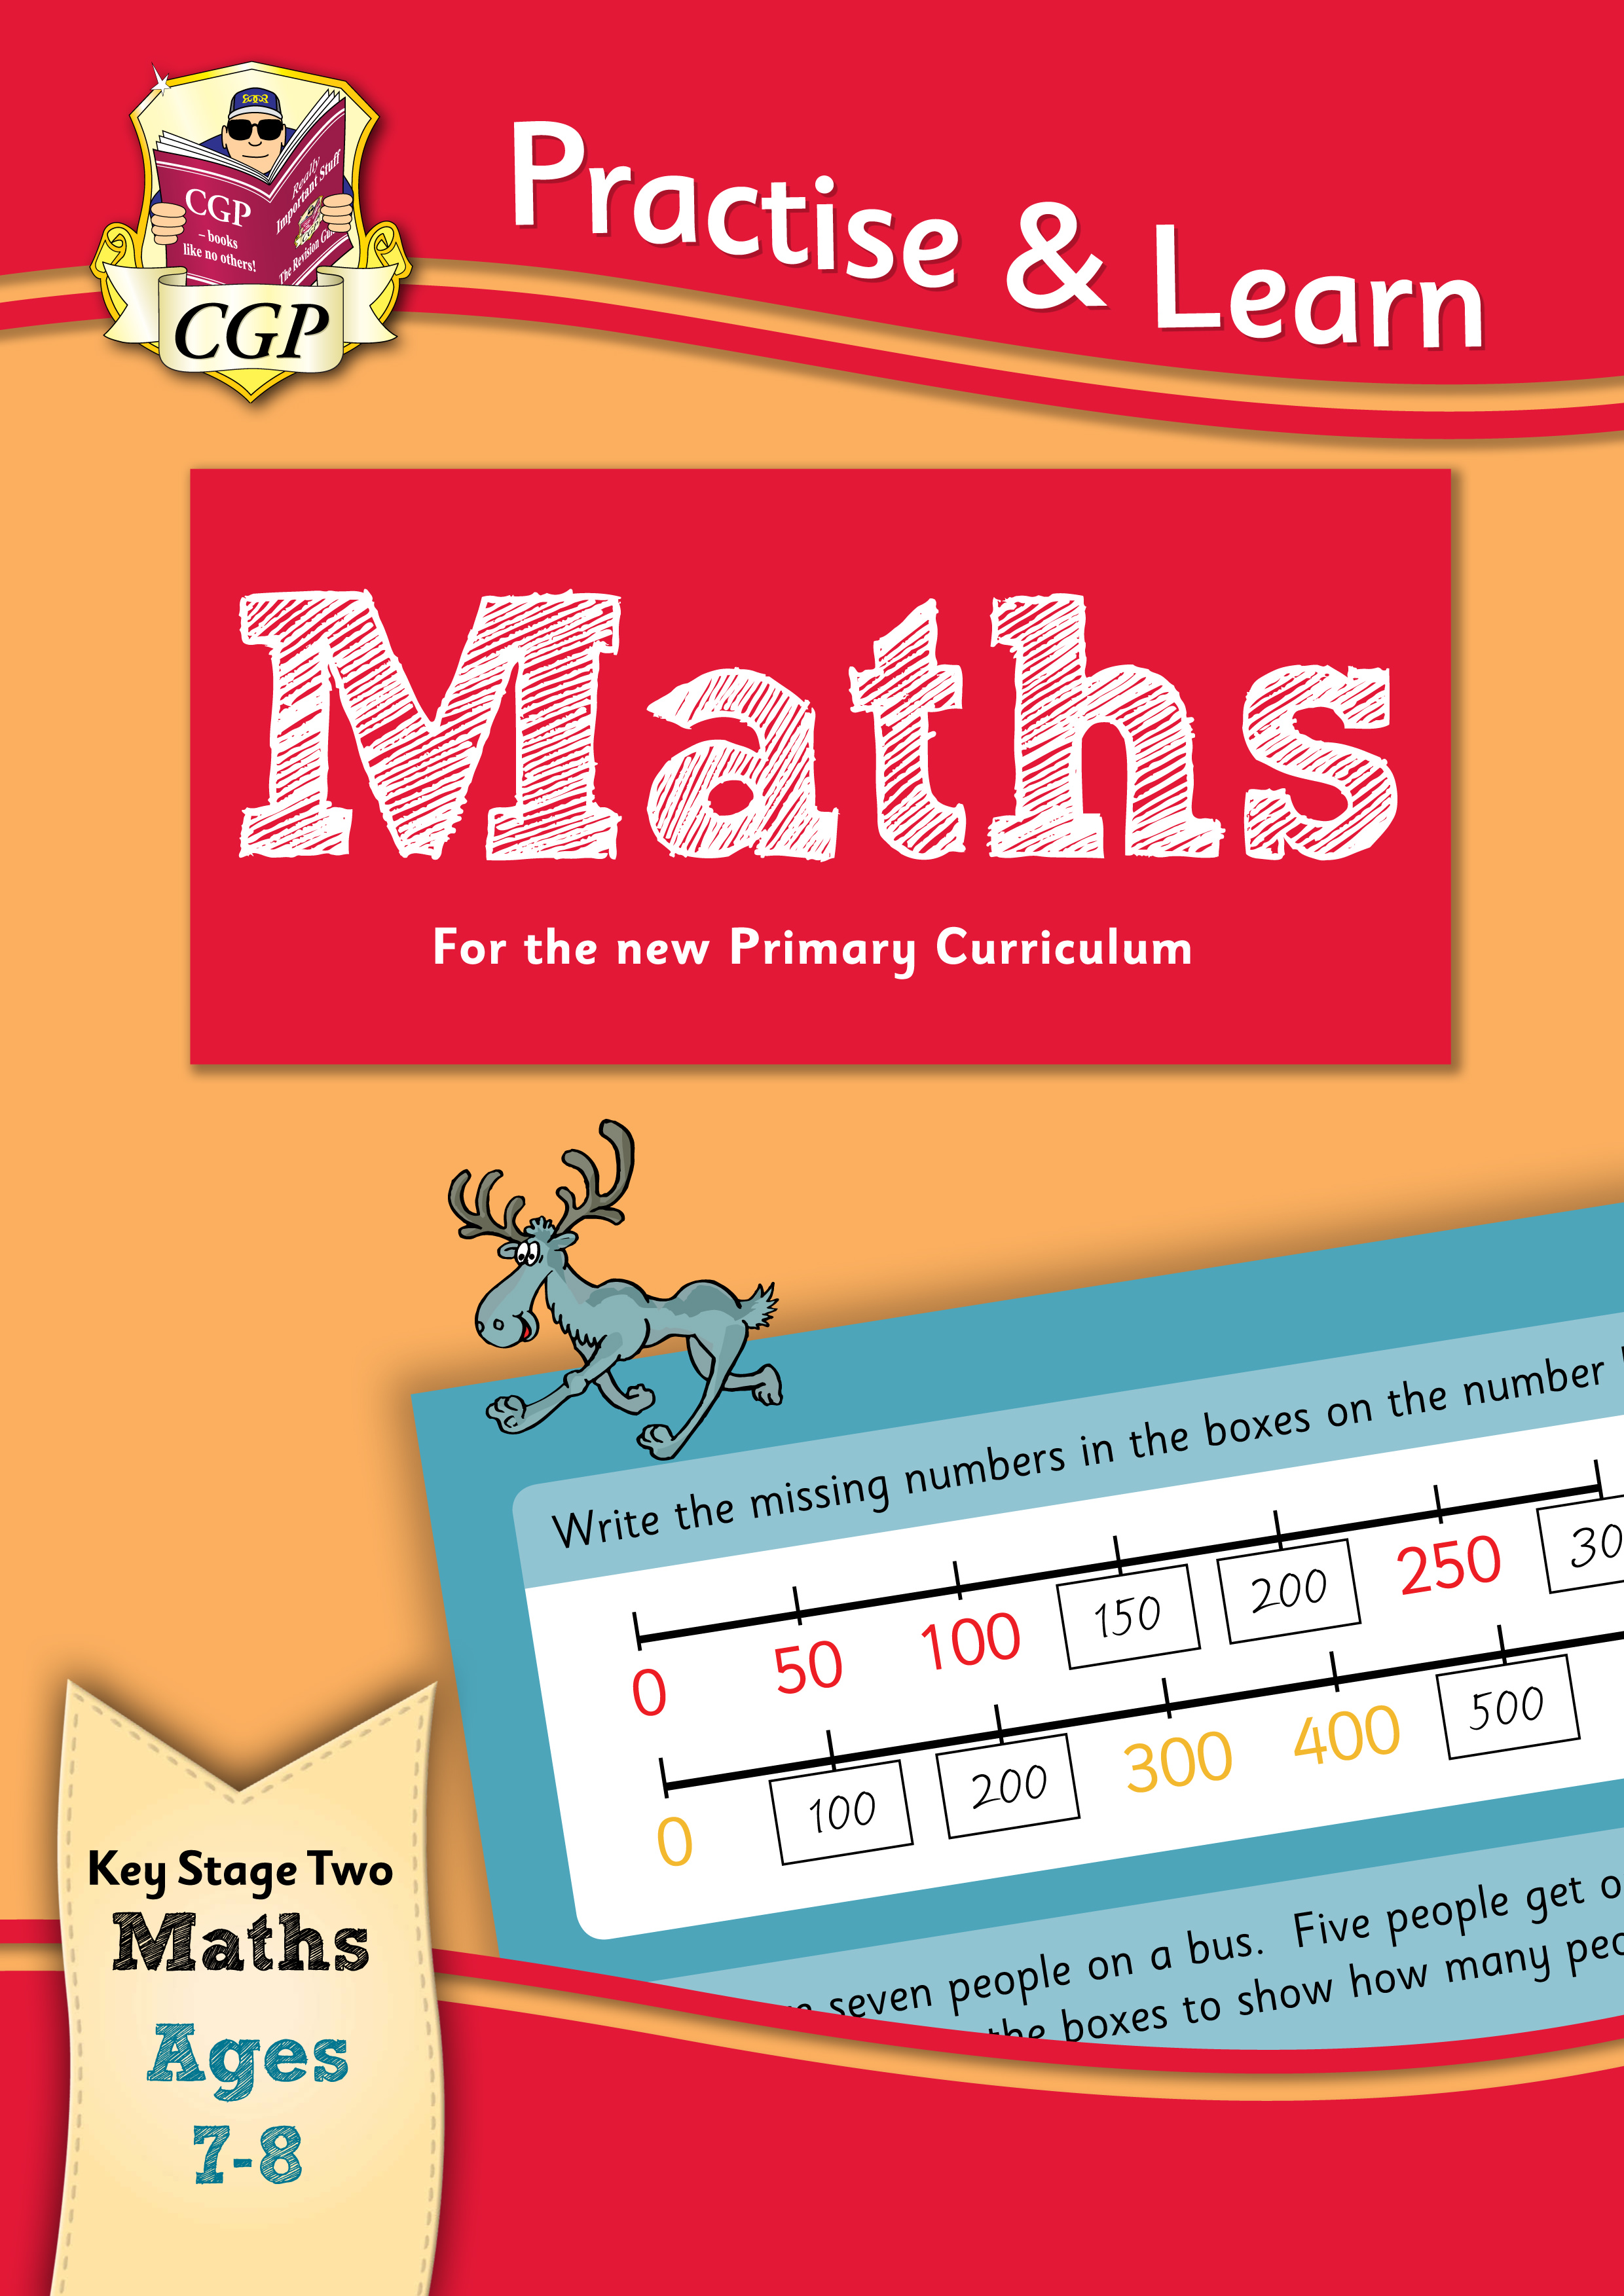 MP3Q22DK - New Curriculum Practise & Learn: Maths for Ages 7-8